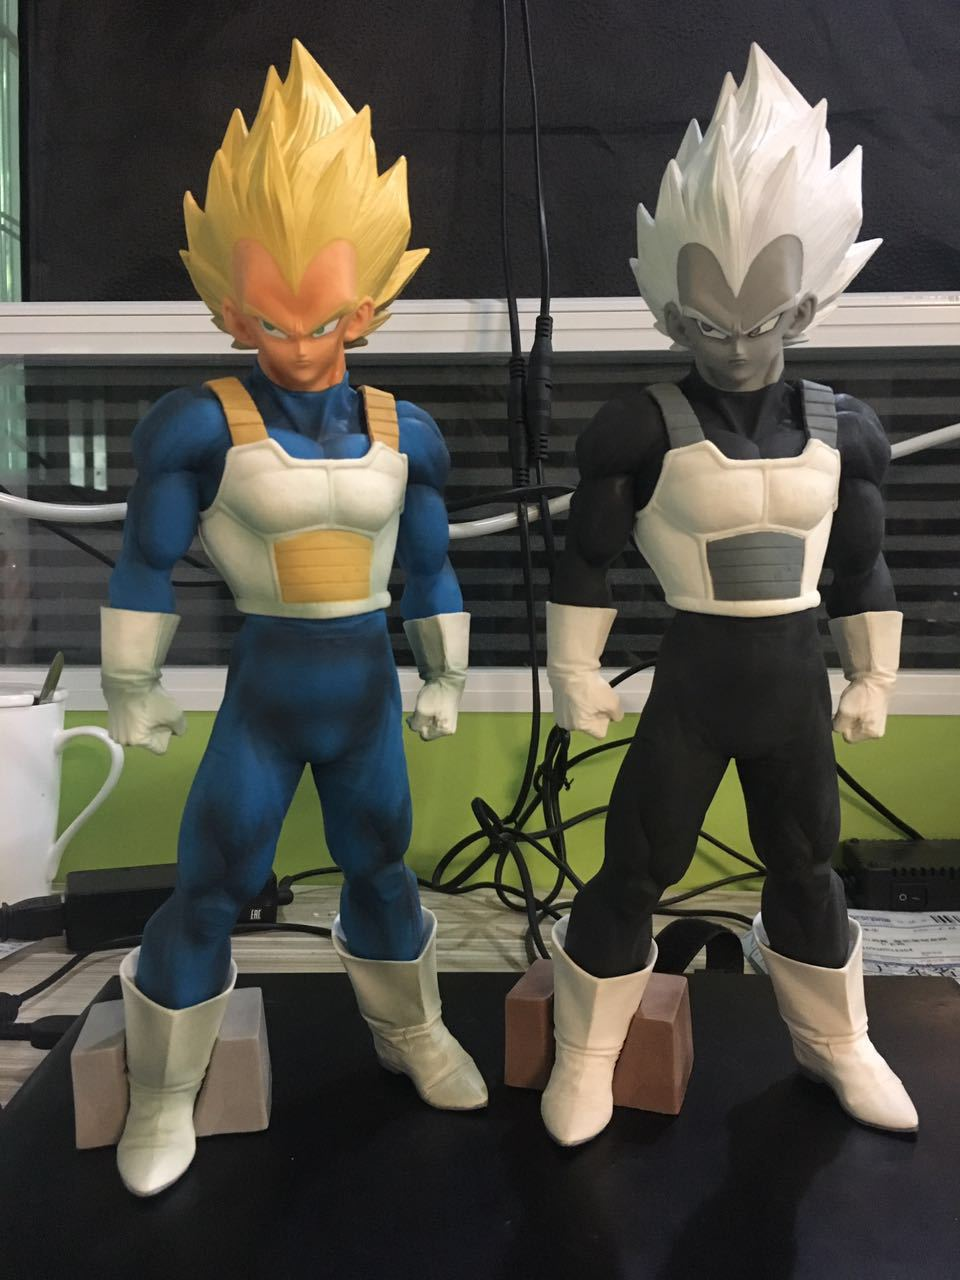 Anime Dragon Ball Z SMSP Super Master Stars Piece Super Saiyan The Vegeta PVC Action Figure Collection Model Kids Toys Doll 32cm